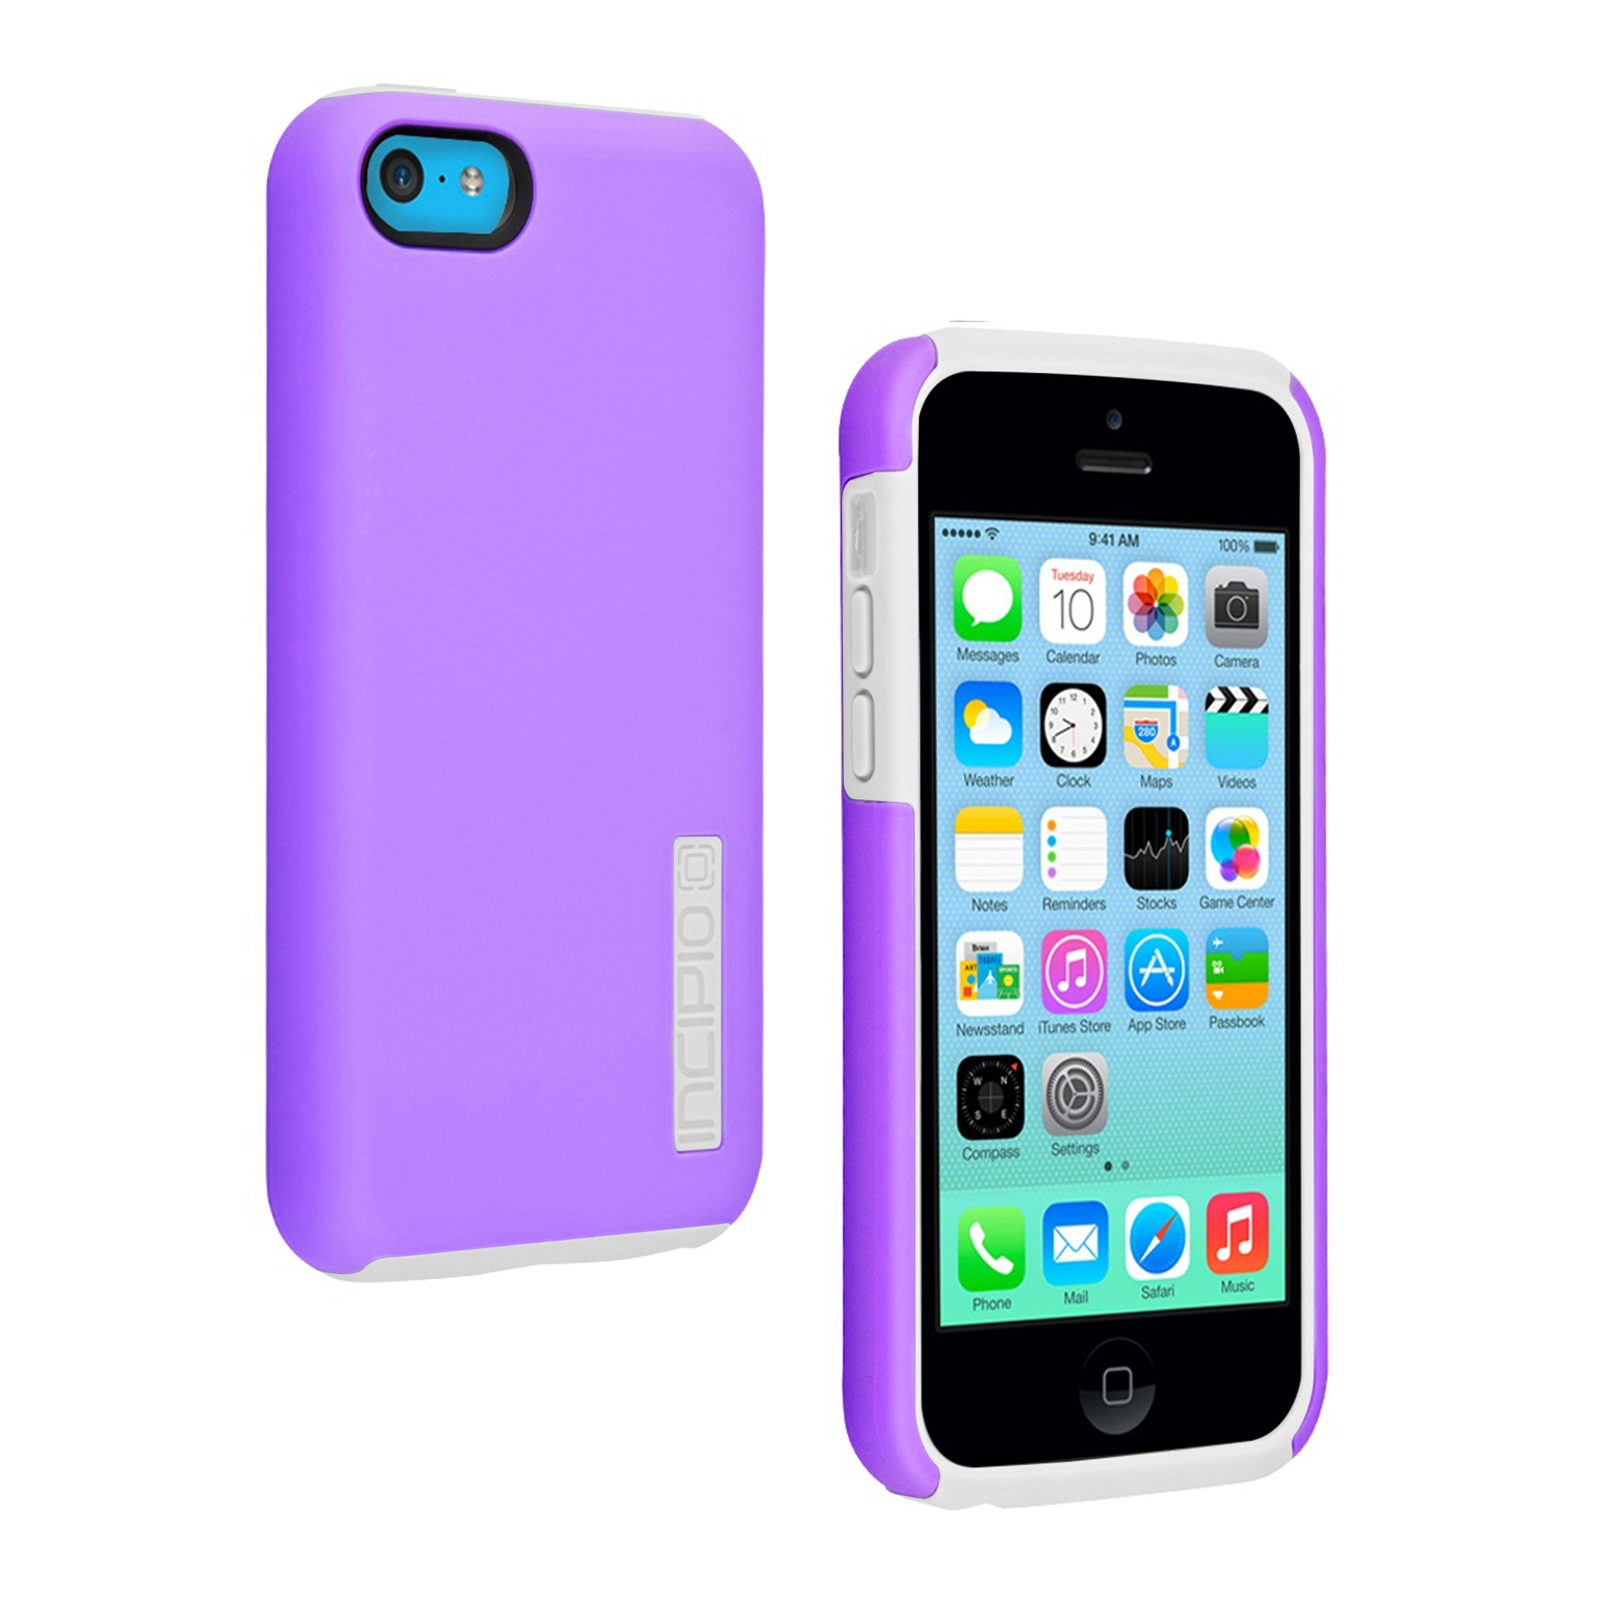 incipio dualpro dual layer protective case for apple iphone 5c. Black Bedroom Furniture Sets. Home Design Ideas